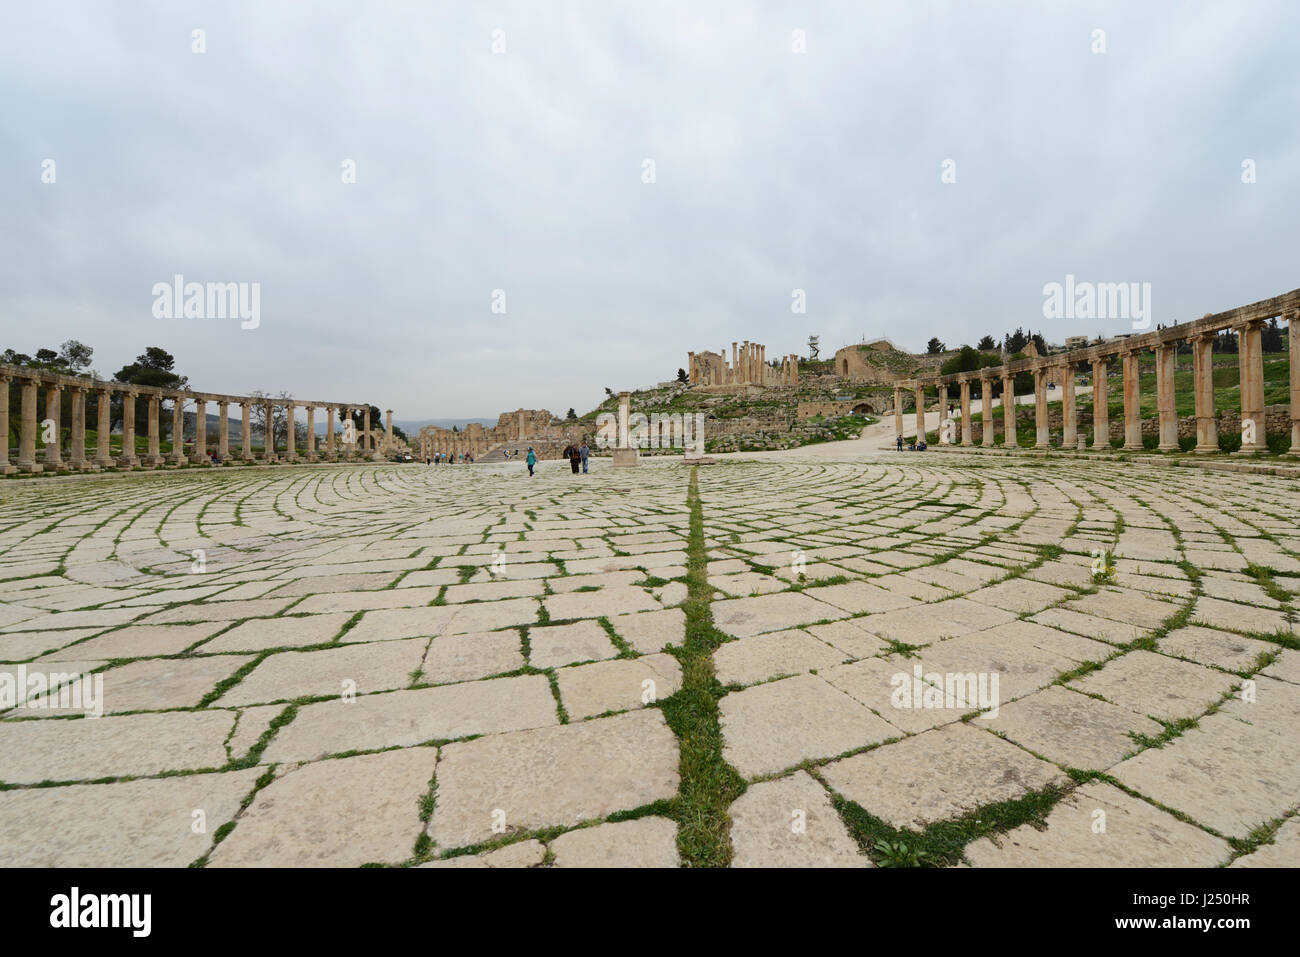 The Forum plaza in the ancient Roman city of Jerash in Jordan. - Stock Image